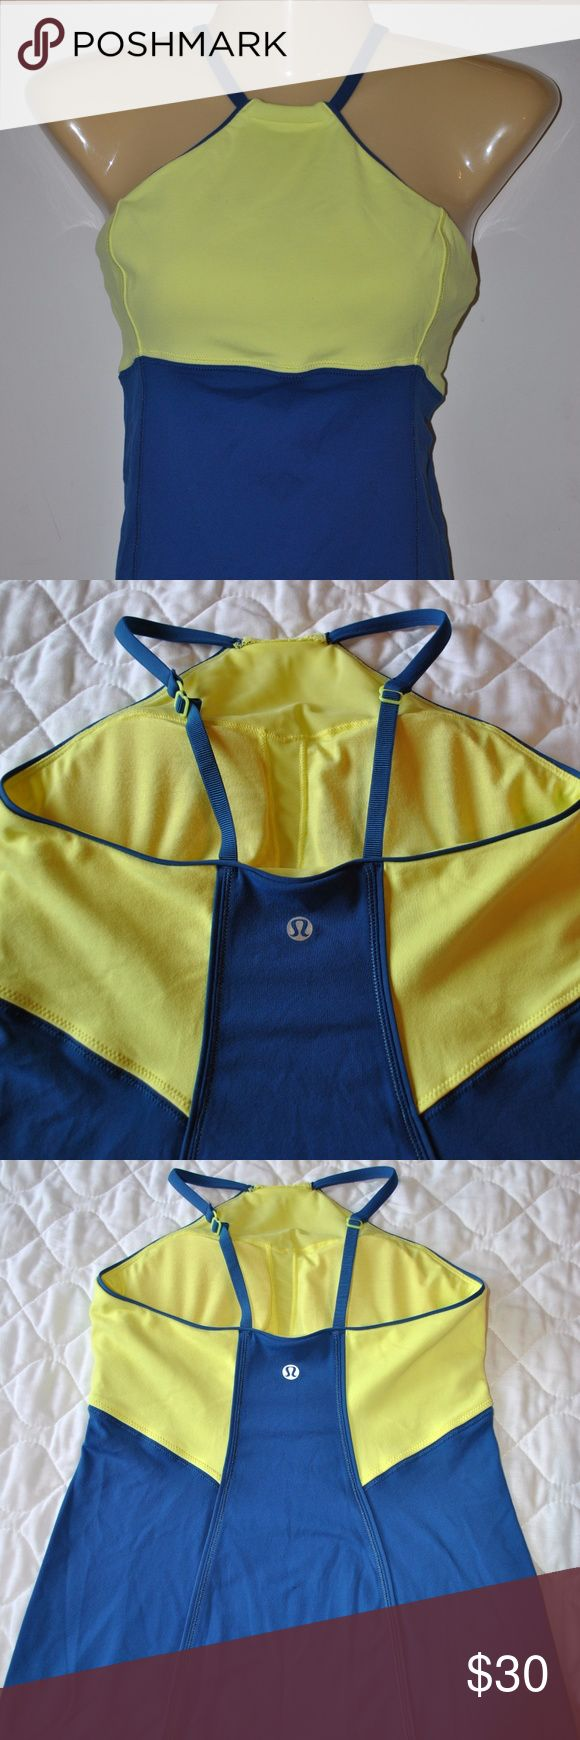 """LULULEMON two toned adjustable strap fitted tank Neon yellow top and royal blue bottom with adjustable strap. Removable padded lined bra. 14"""" pit to pit, 13"""" waist across, 17"""" pit to hem. Measurements are taken laying flat without any stretch. Smoke and pet free home. Let me know if you have any questions. Have a great day. lululemon athletica Tops Tank Tops"""